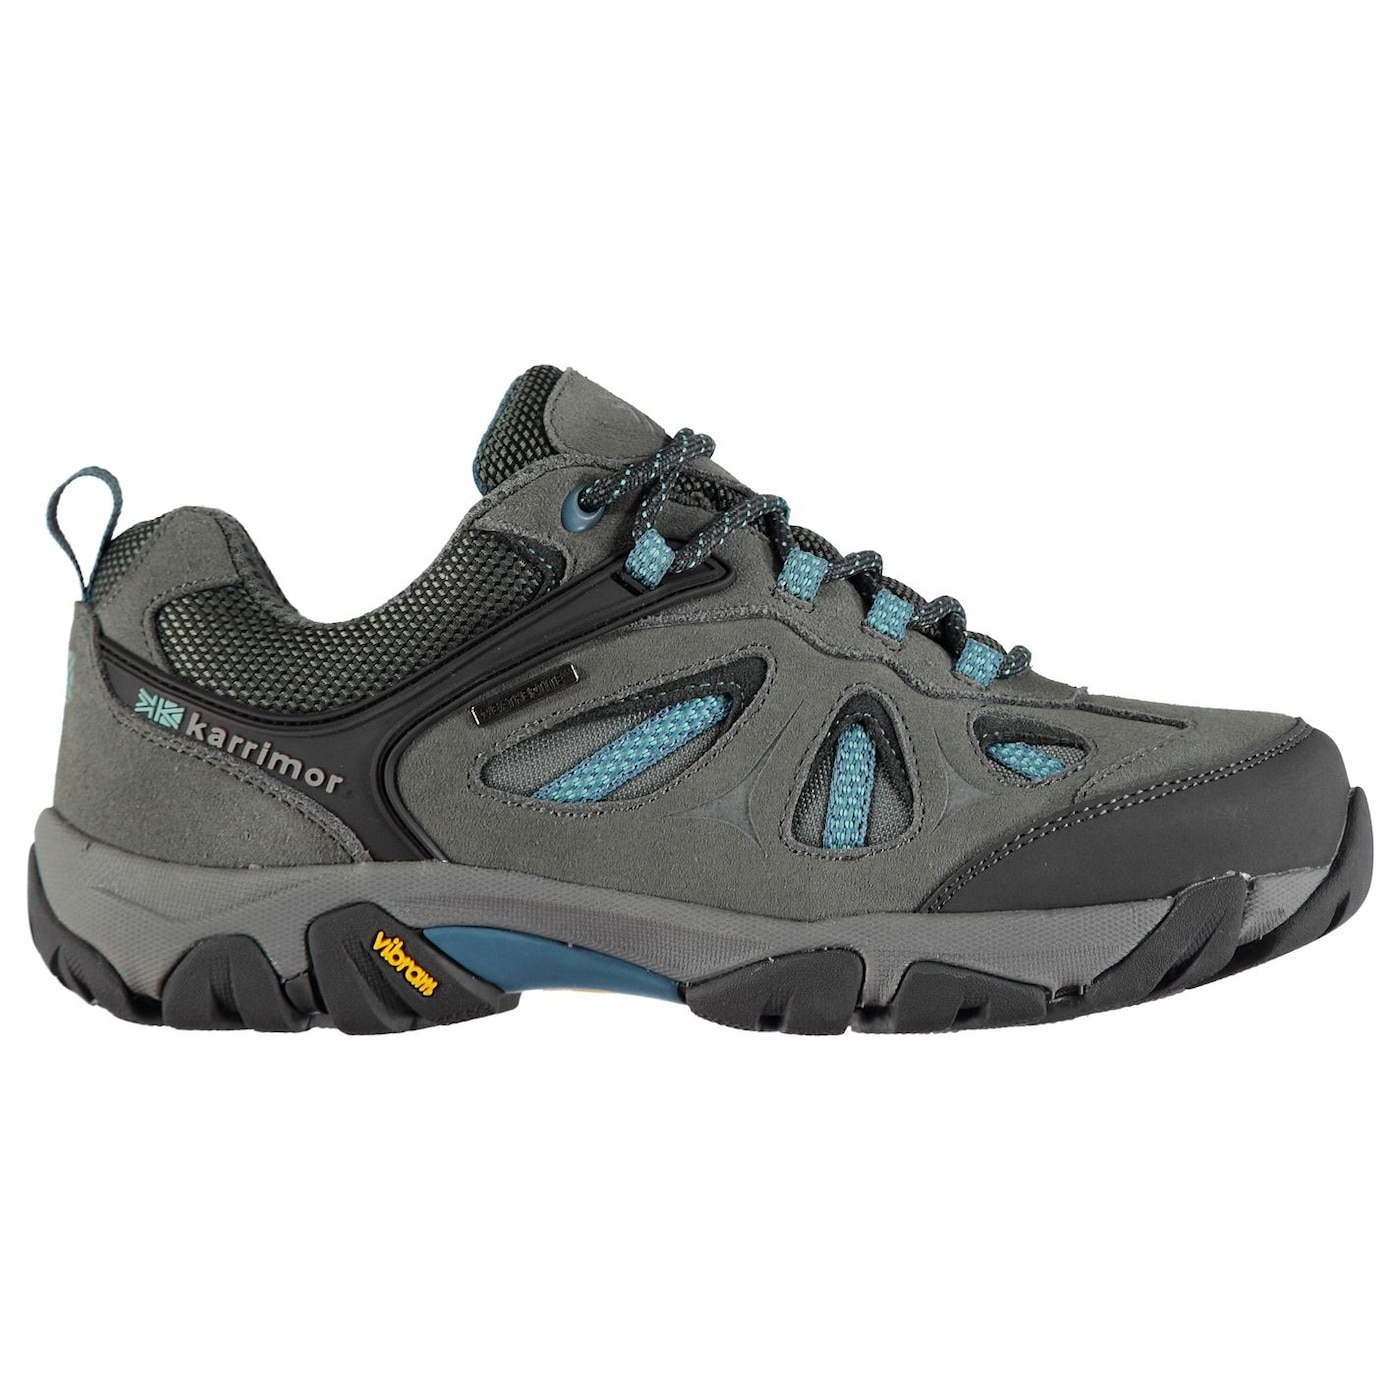 Karrimor Aspen Low Ladies Waterproof Walking Shoes